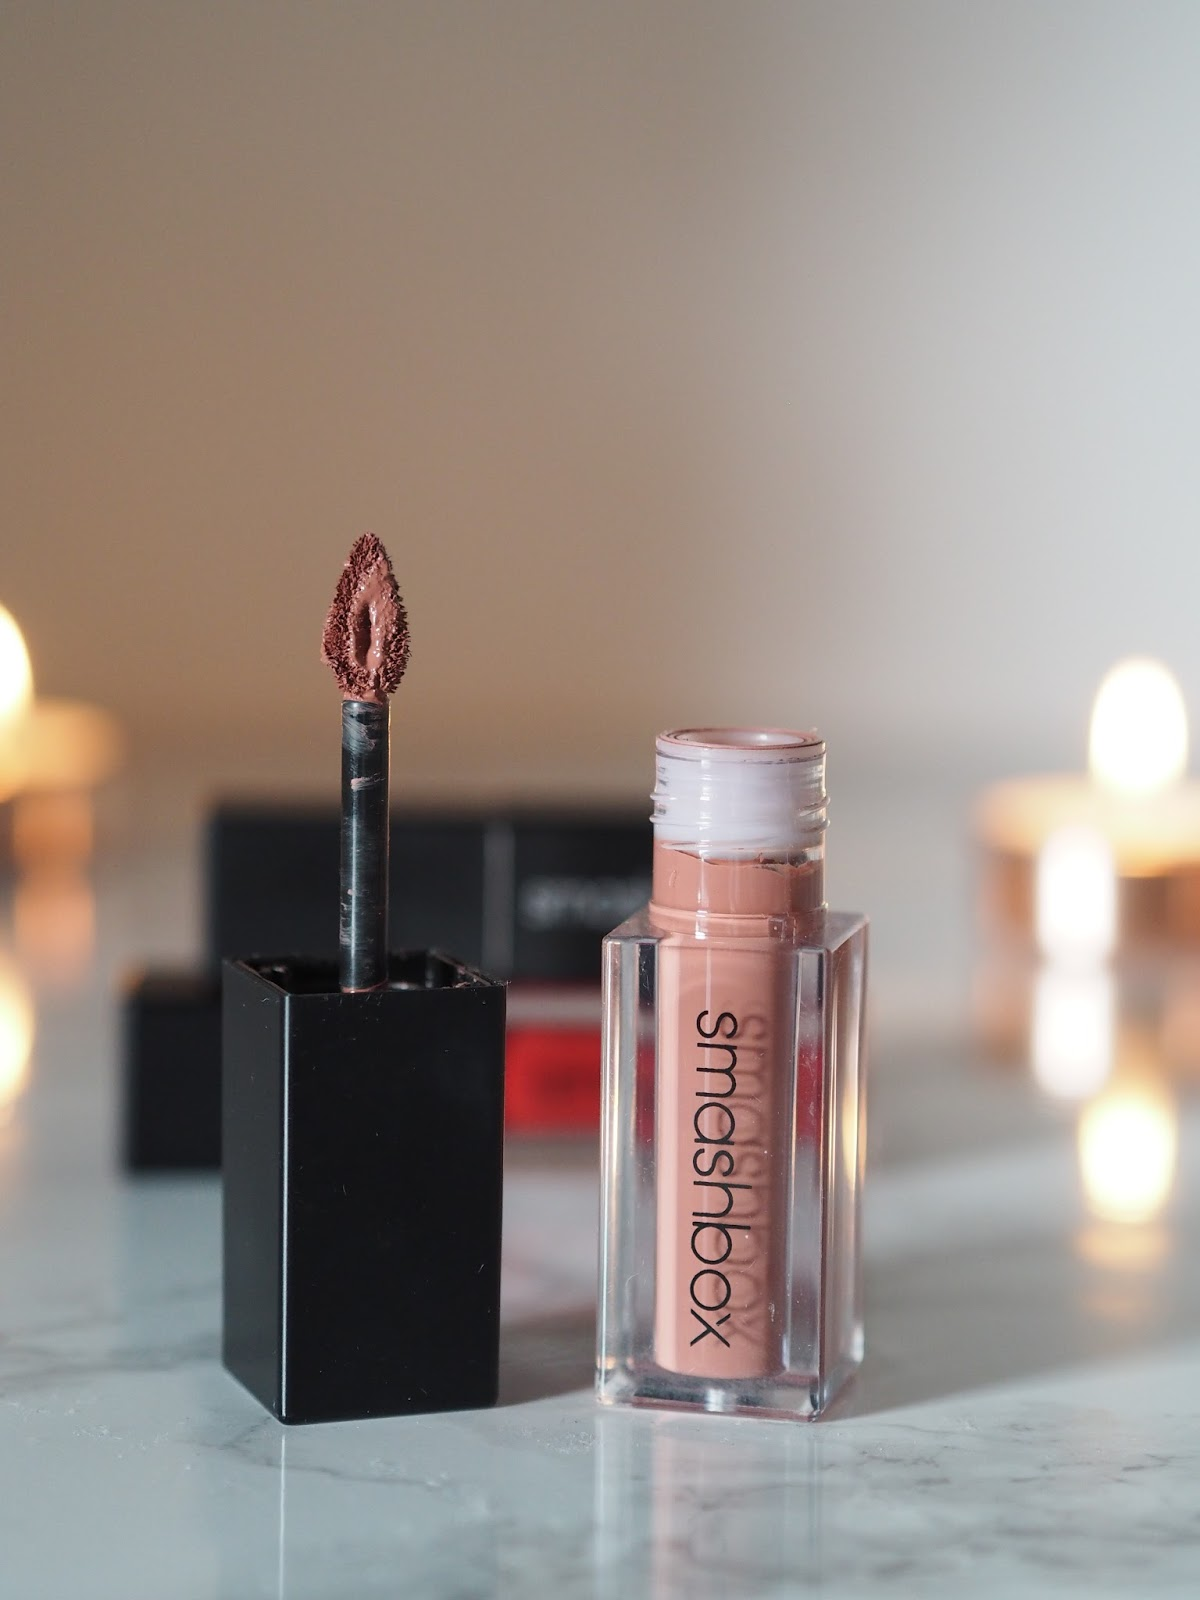 Smashbox lipstick makeup Priceless Life of Mine Over 40 lifestyle blog